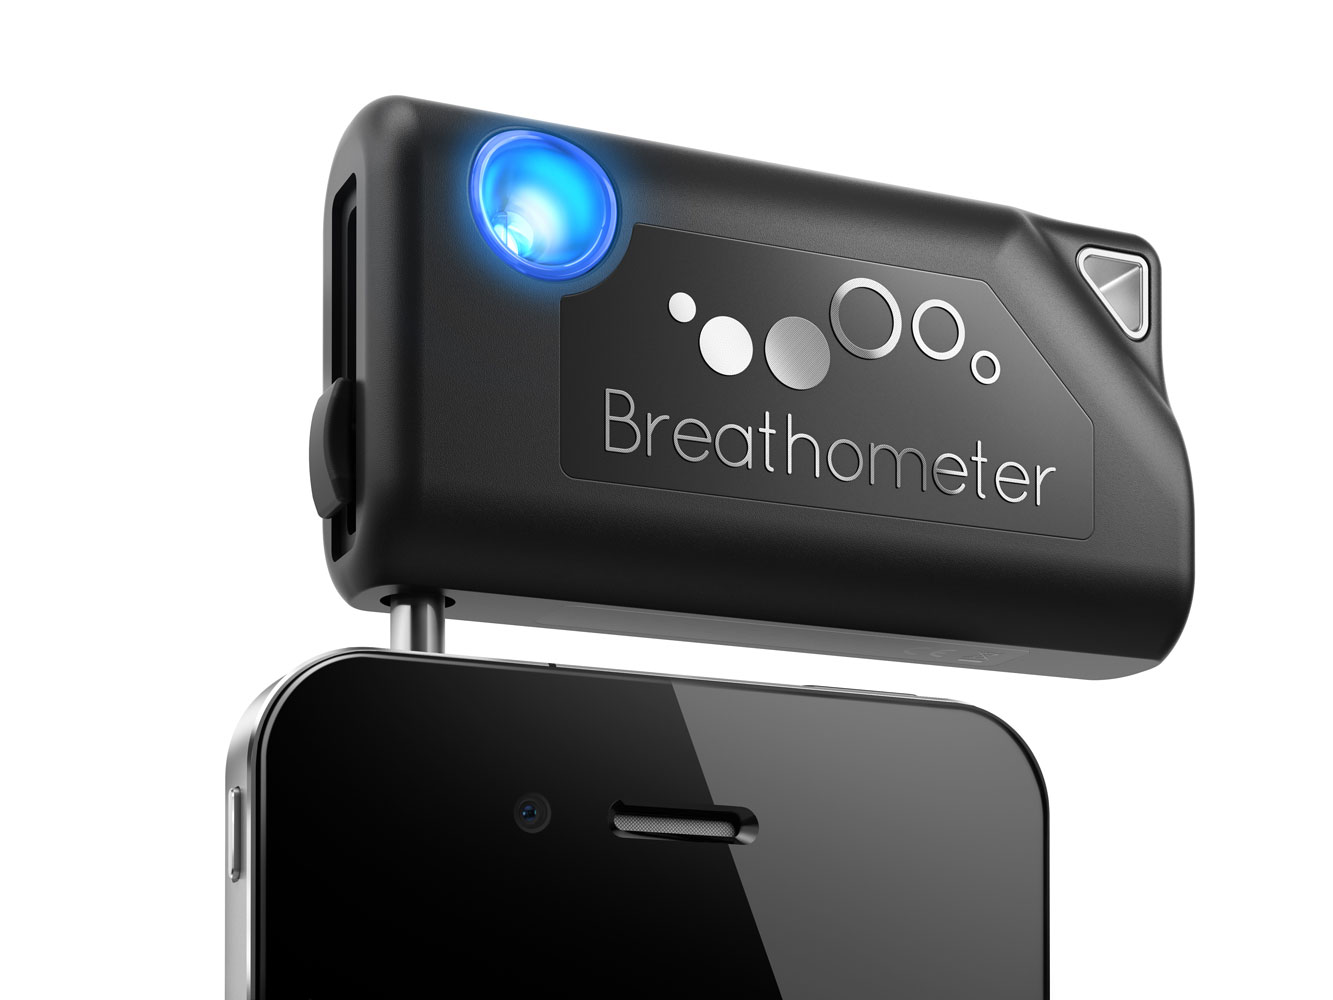 What is a breathometer